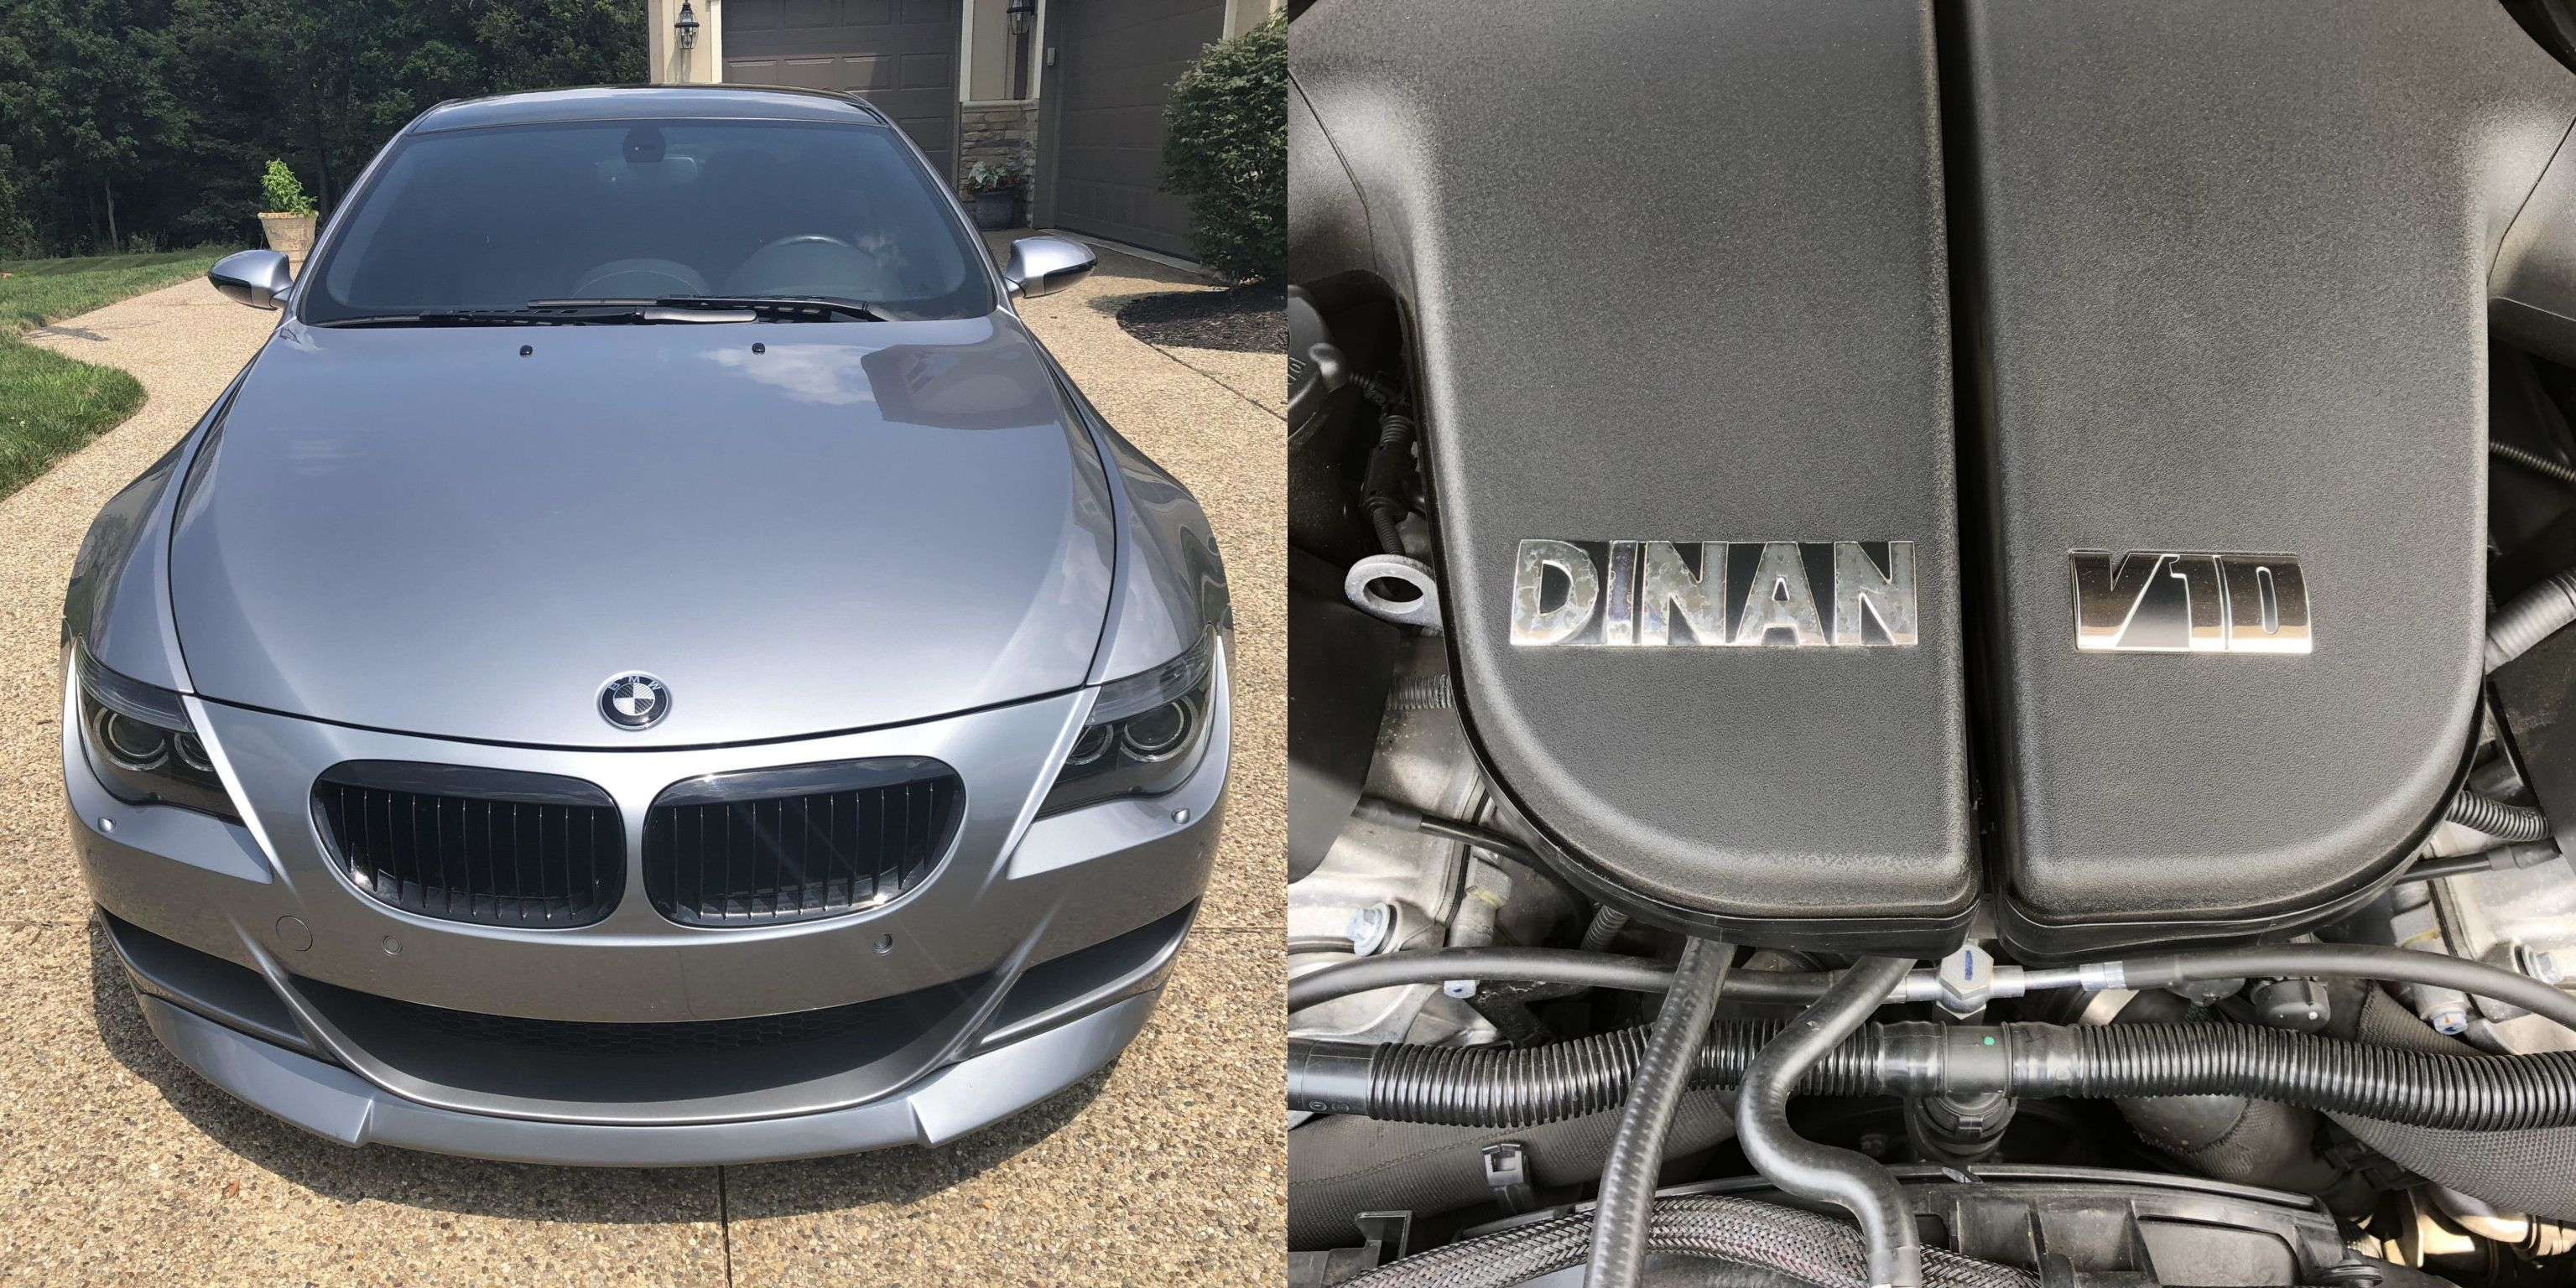 2006 BMW M6 Dinan S3 With 628-HP For Sale